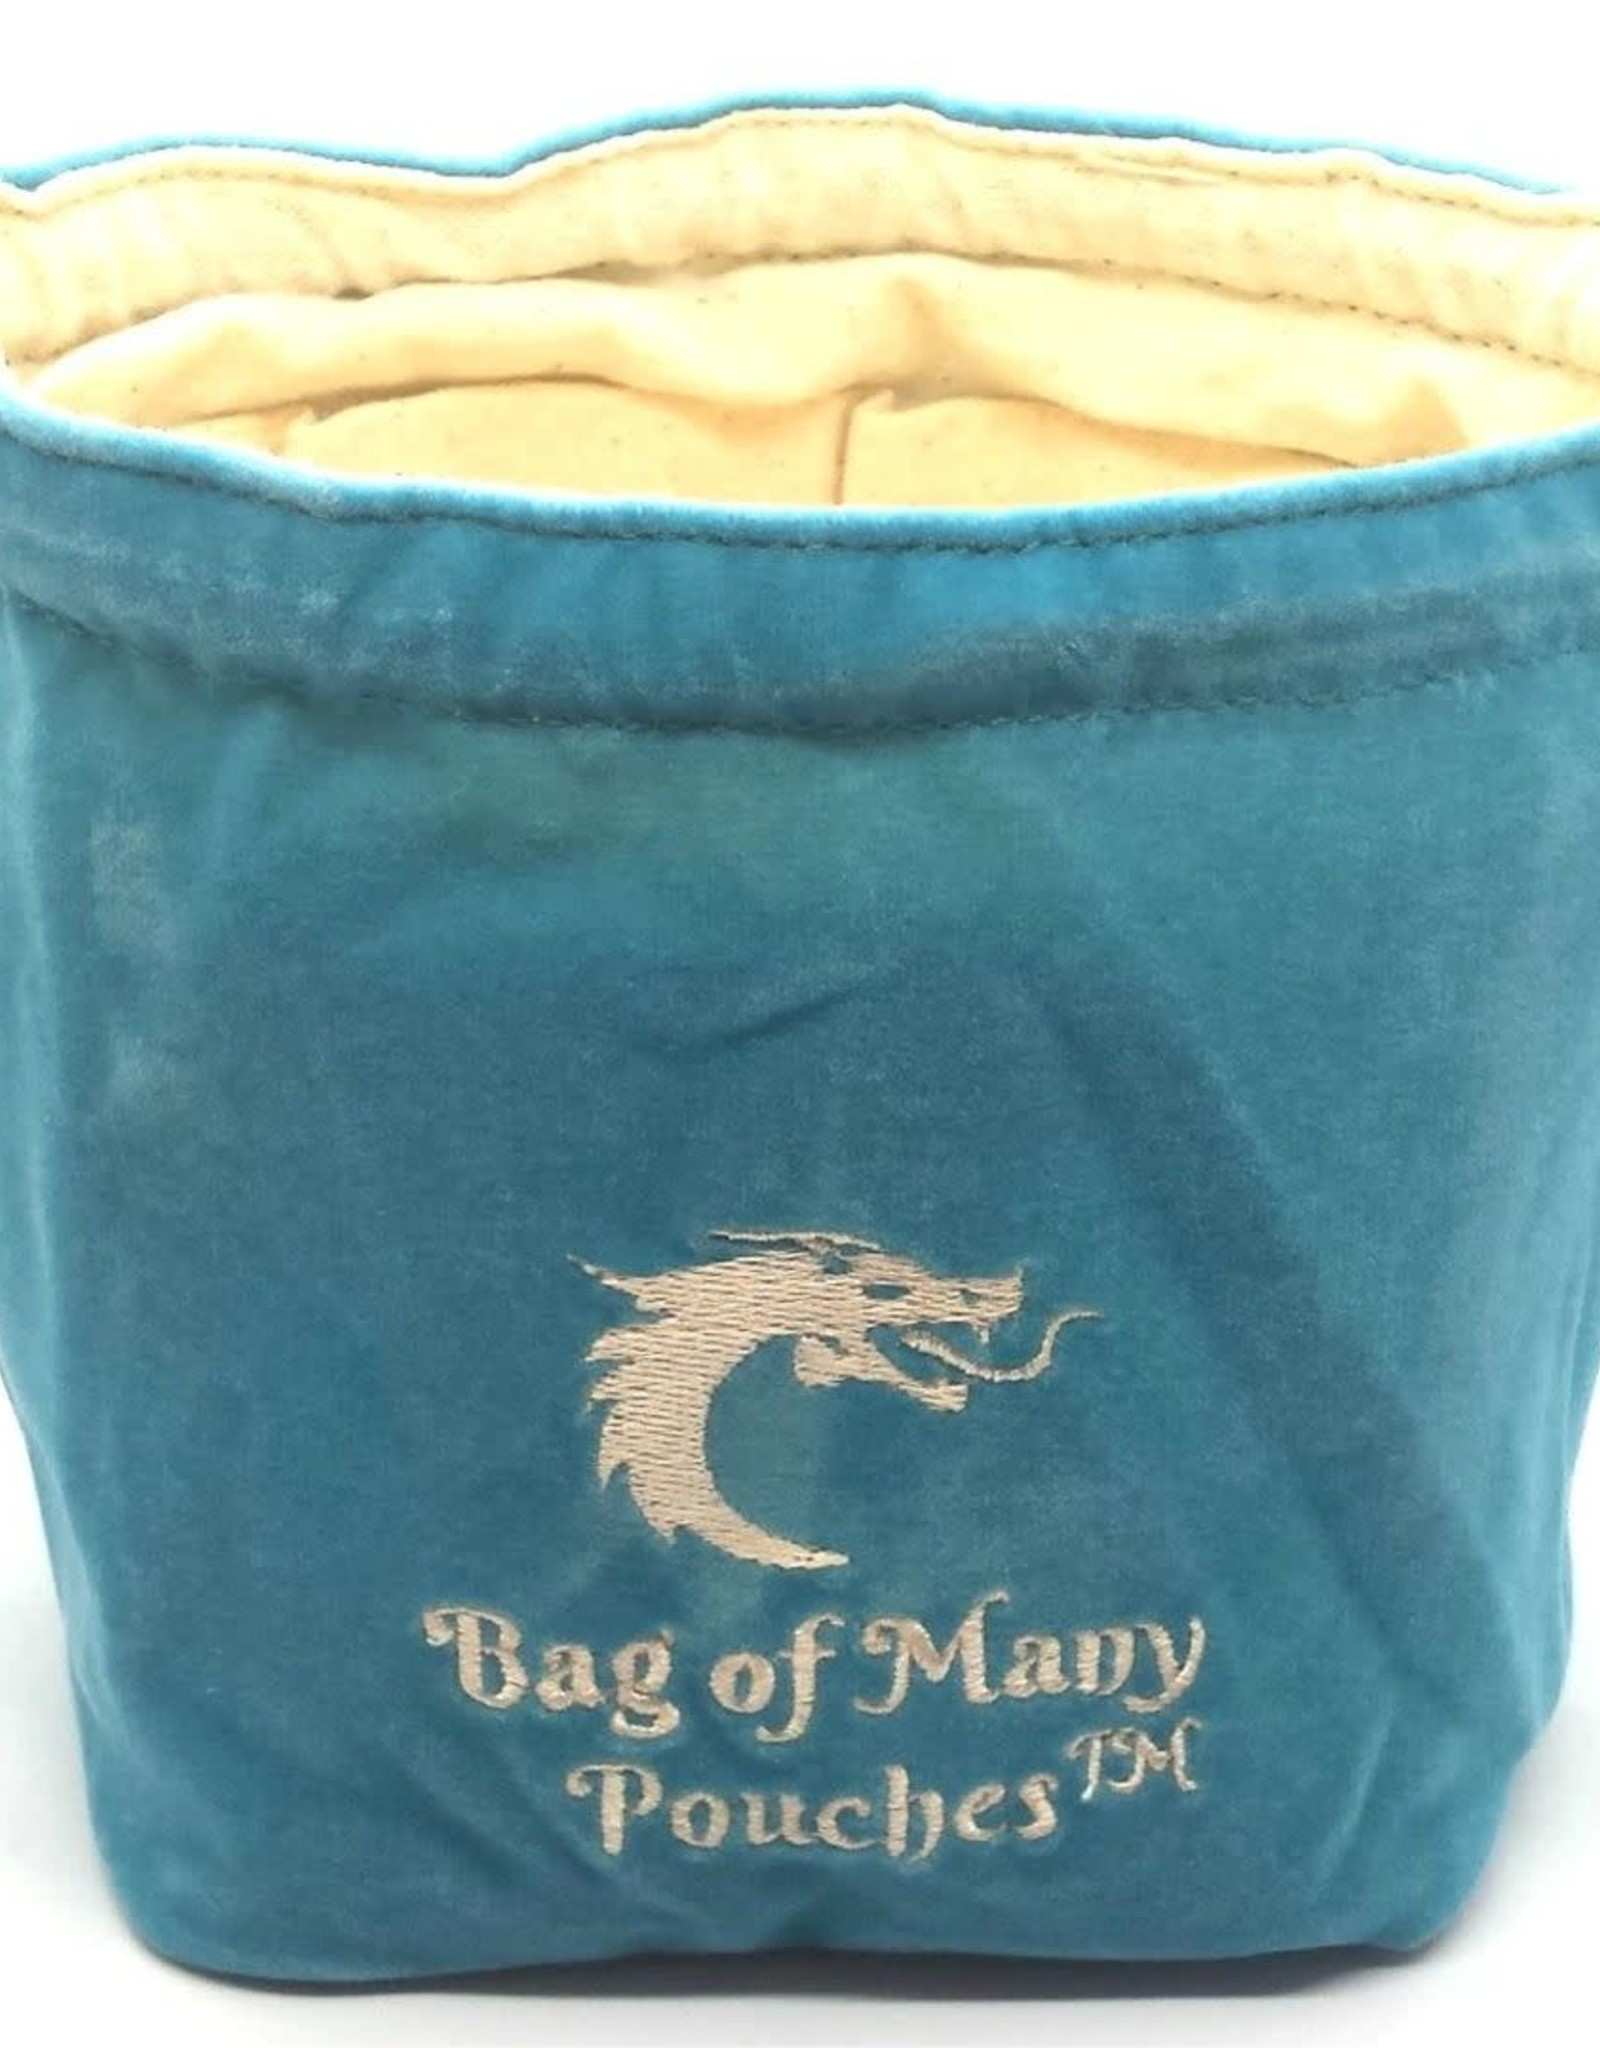 Bag of Many Pouches Bag of Many Pouches: Teal